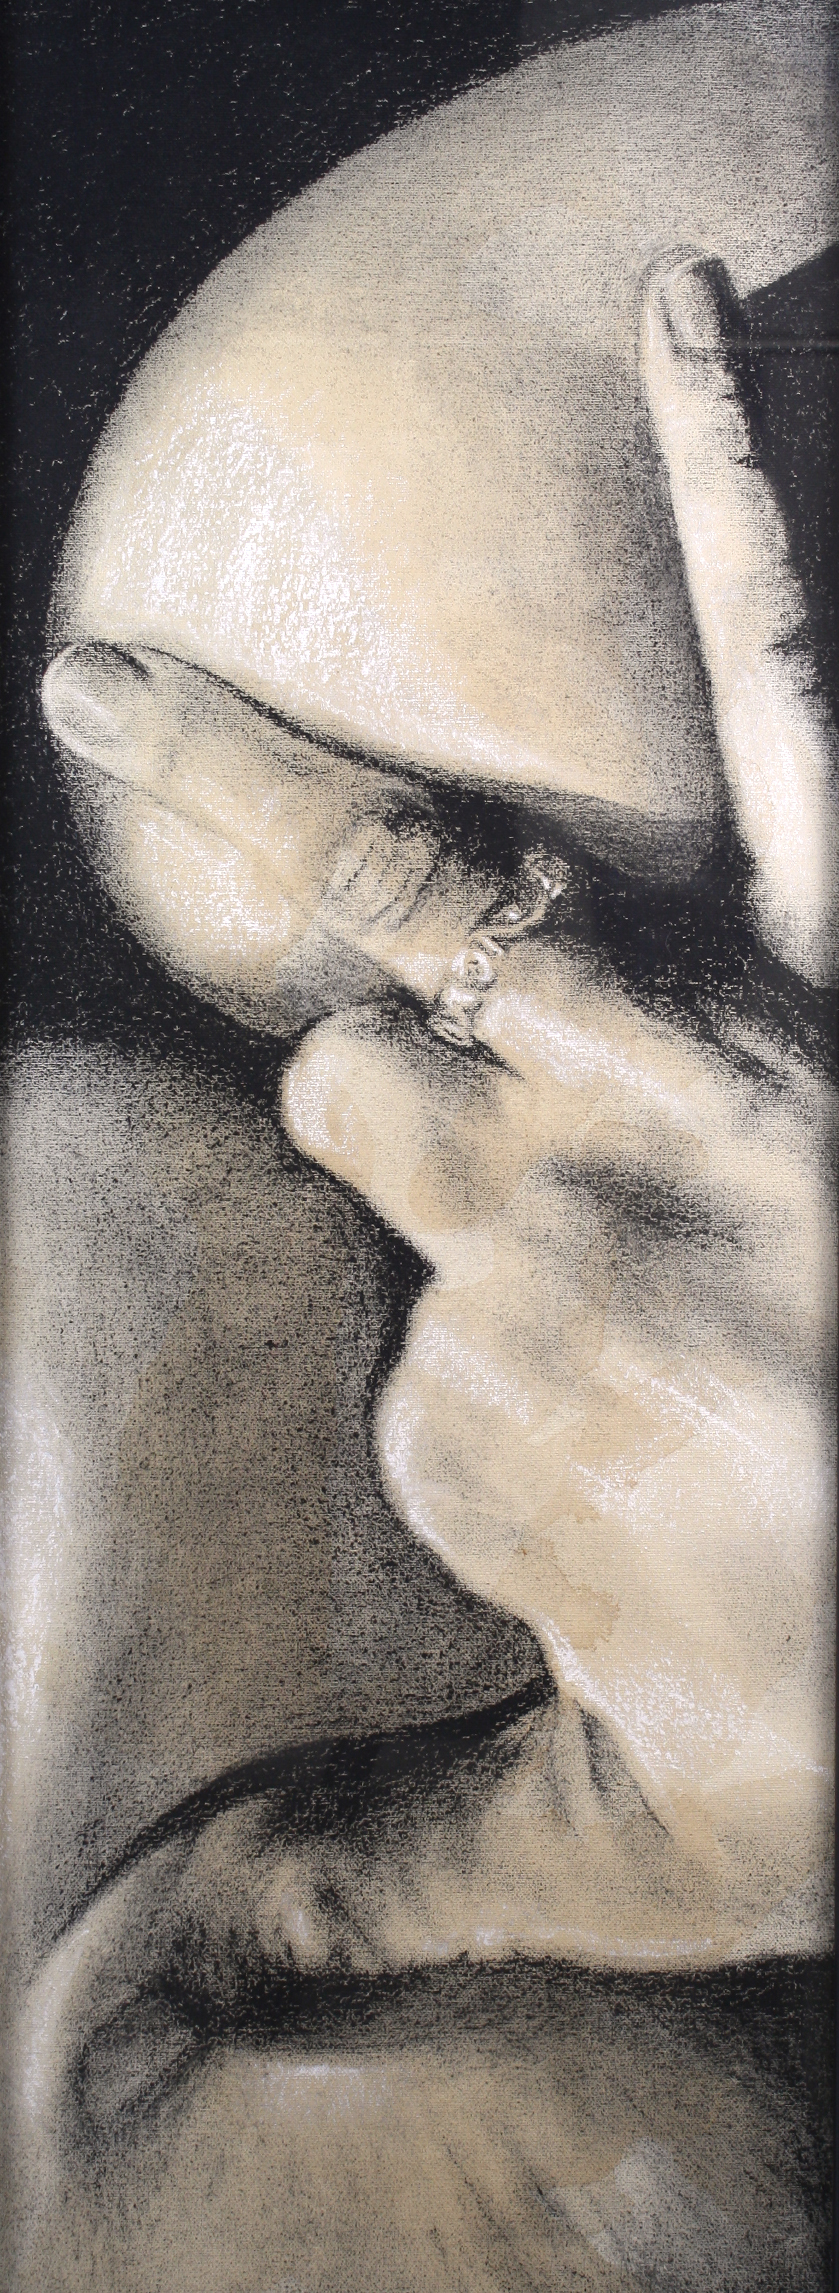 Sexting IMG.201508.005  Charcoal & Tea on Canvas ©2016 The Femme Project